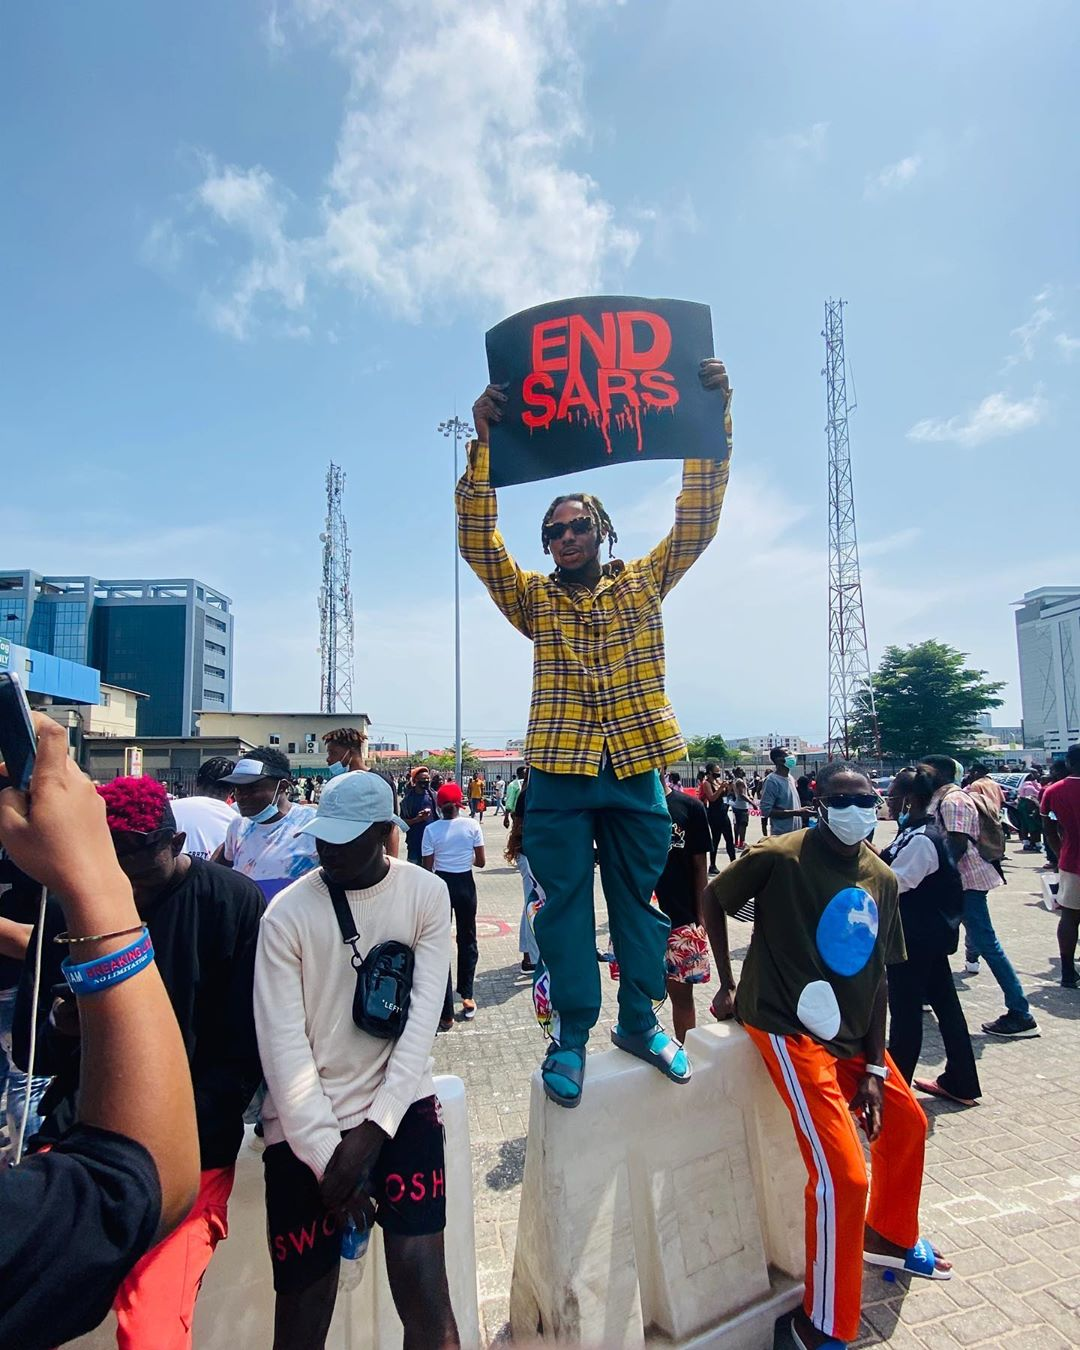 POLICE BRUTALITY: ENOUGH IS ENOUGH